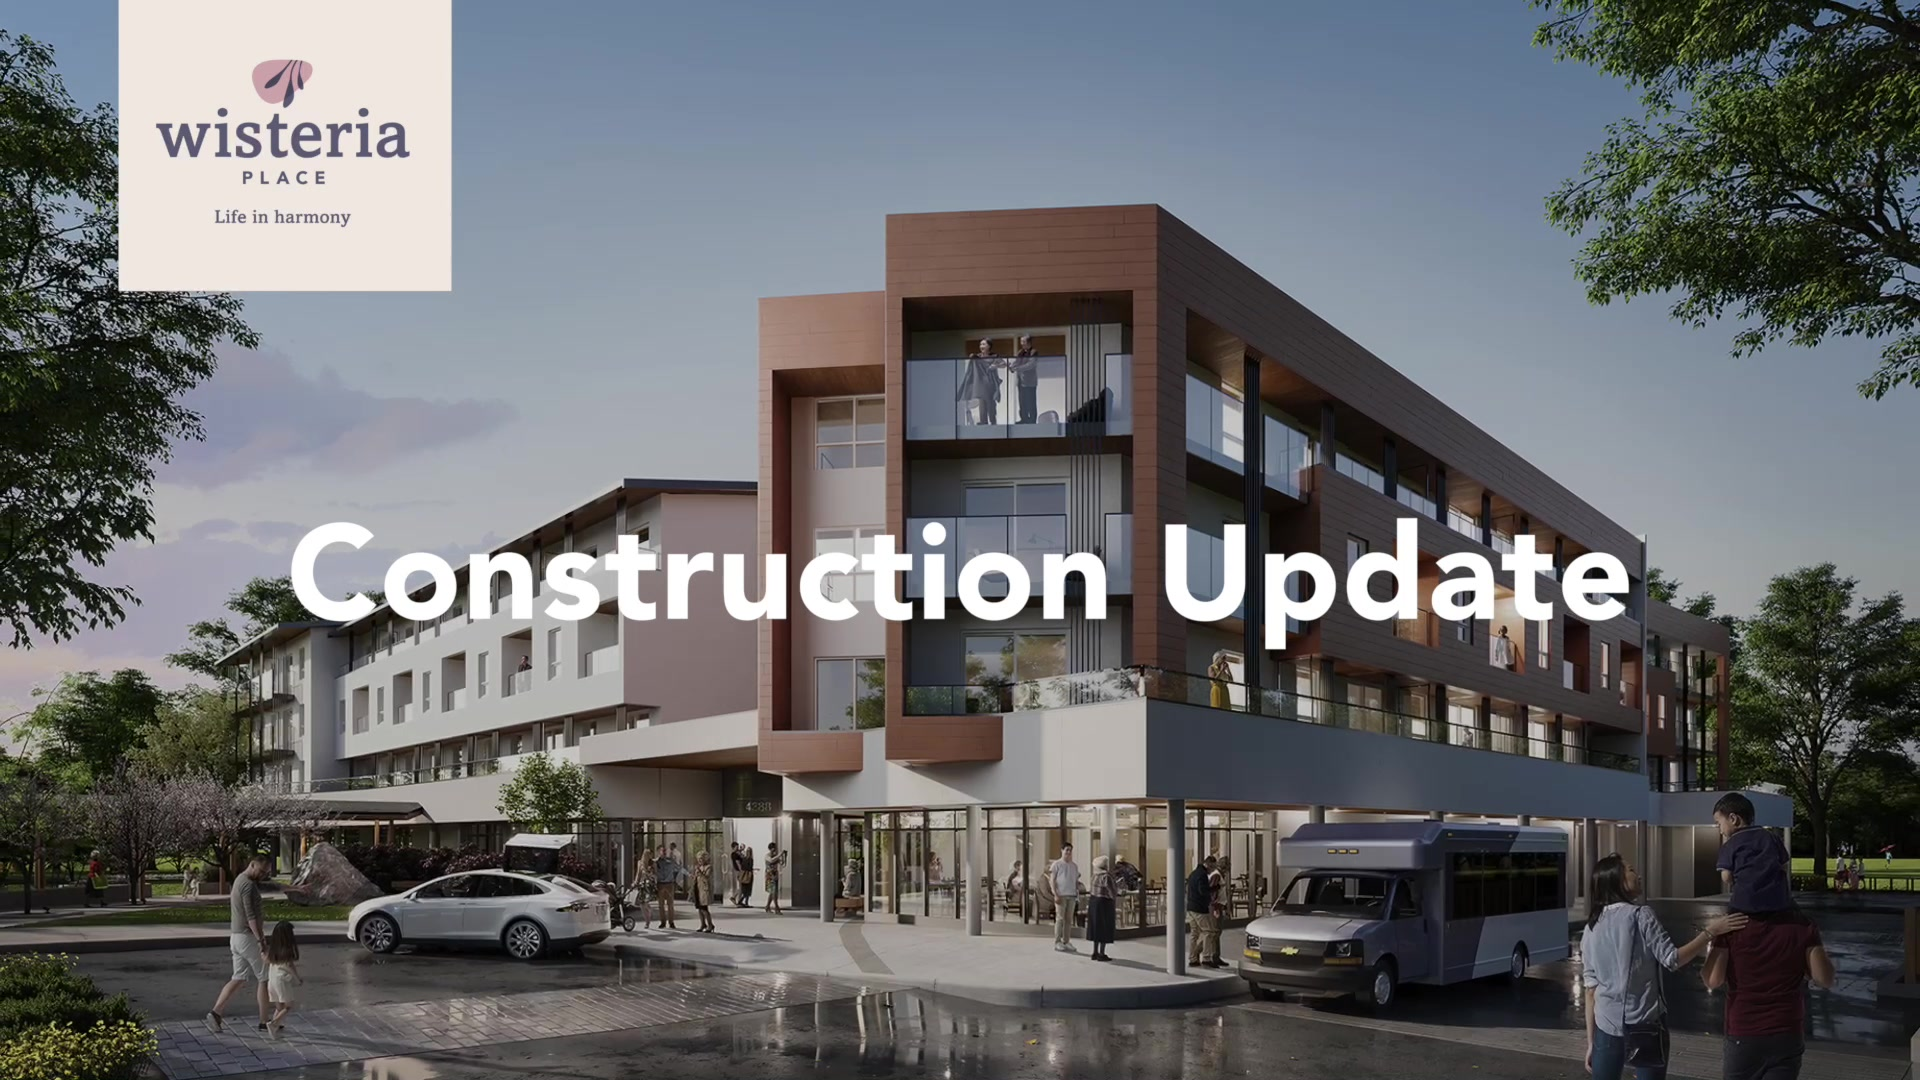 Wisteria Place - Construction Update